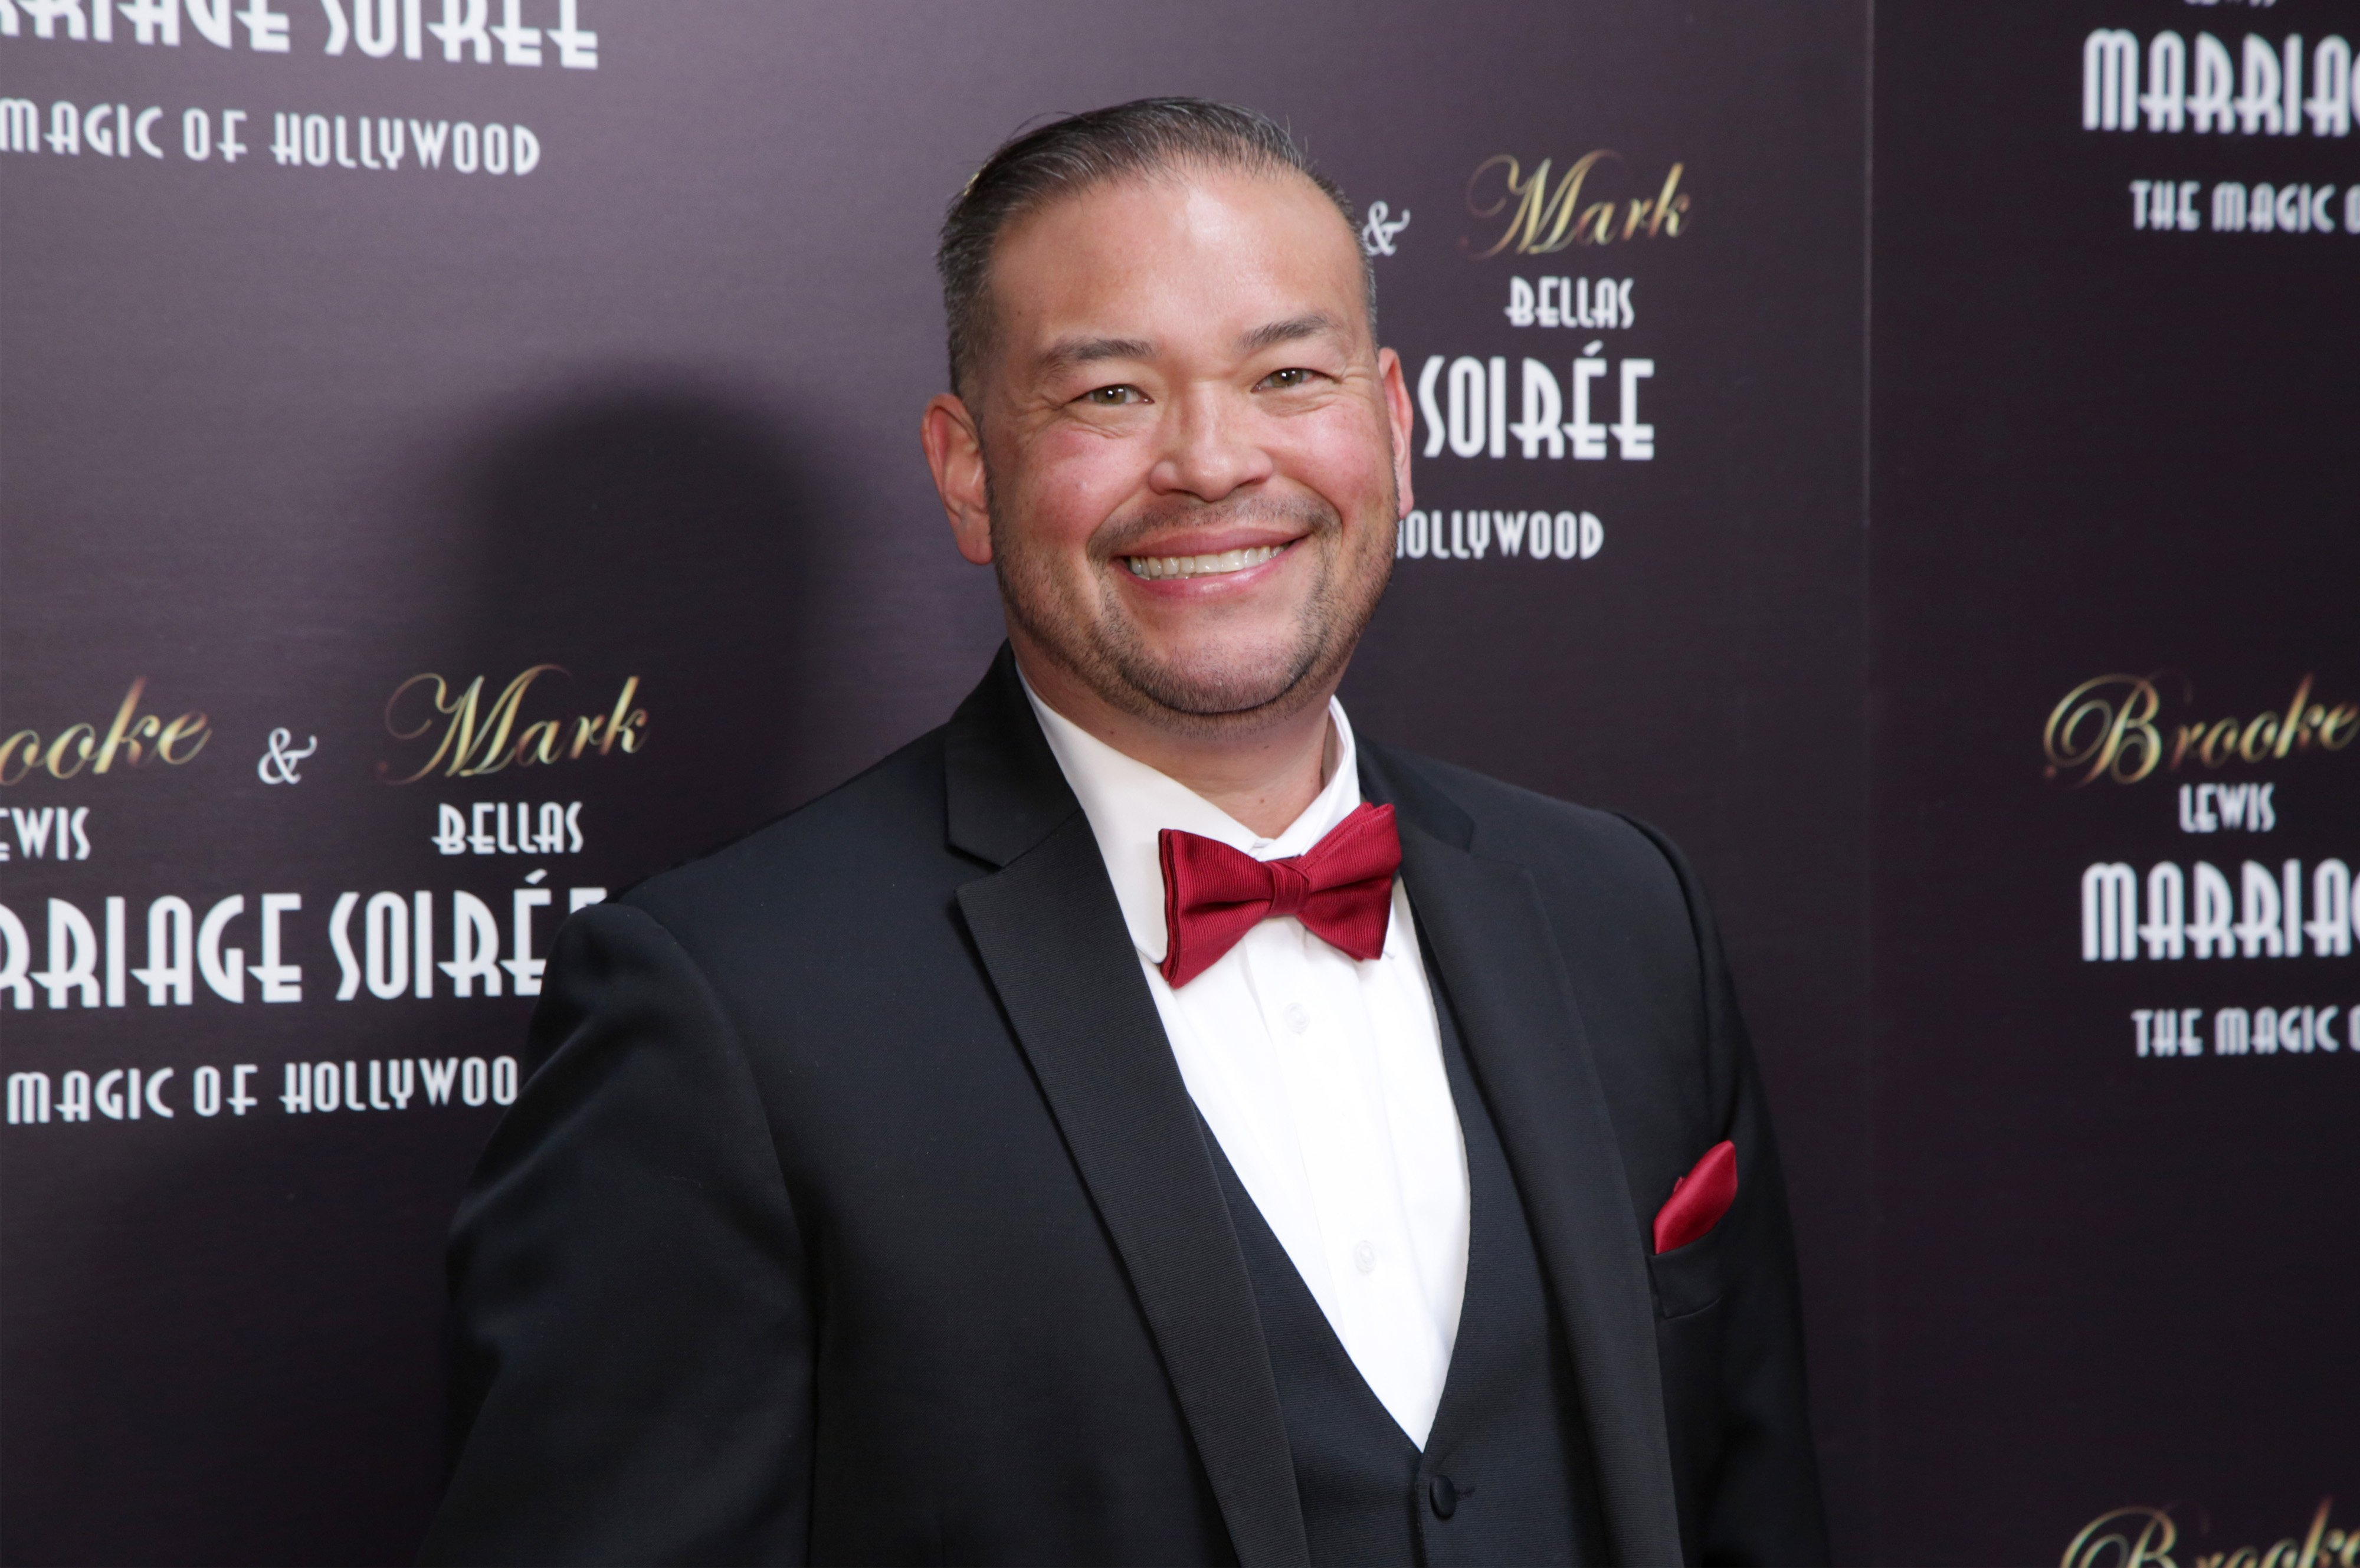 """Jon Gosselin attends Brooke & Mark's Marriage Soiree """"The Magic Of Hollywood"""" at the Houdini Estate on June 01, 2019 in Los Angeles, California.   Source: Getty Images"""